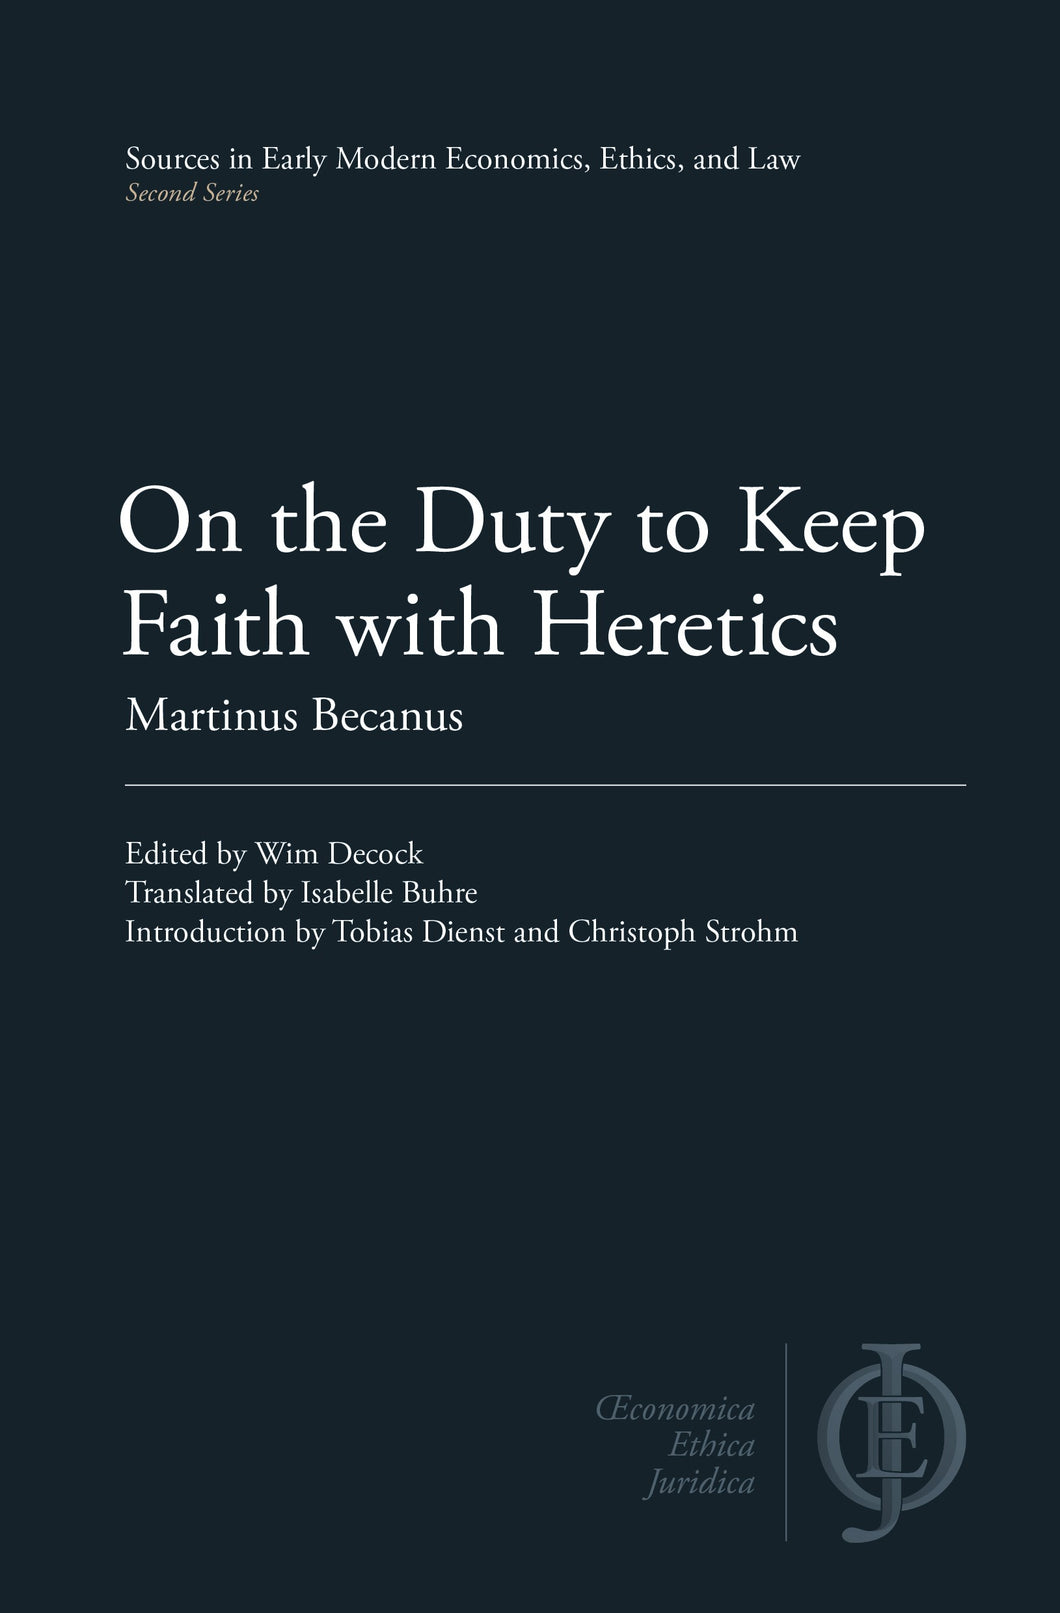 On the Duty to Keep Faith with Heretics